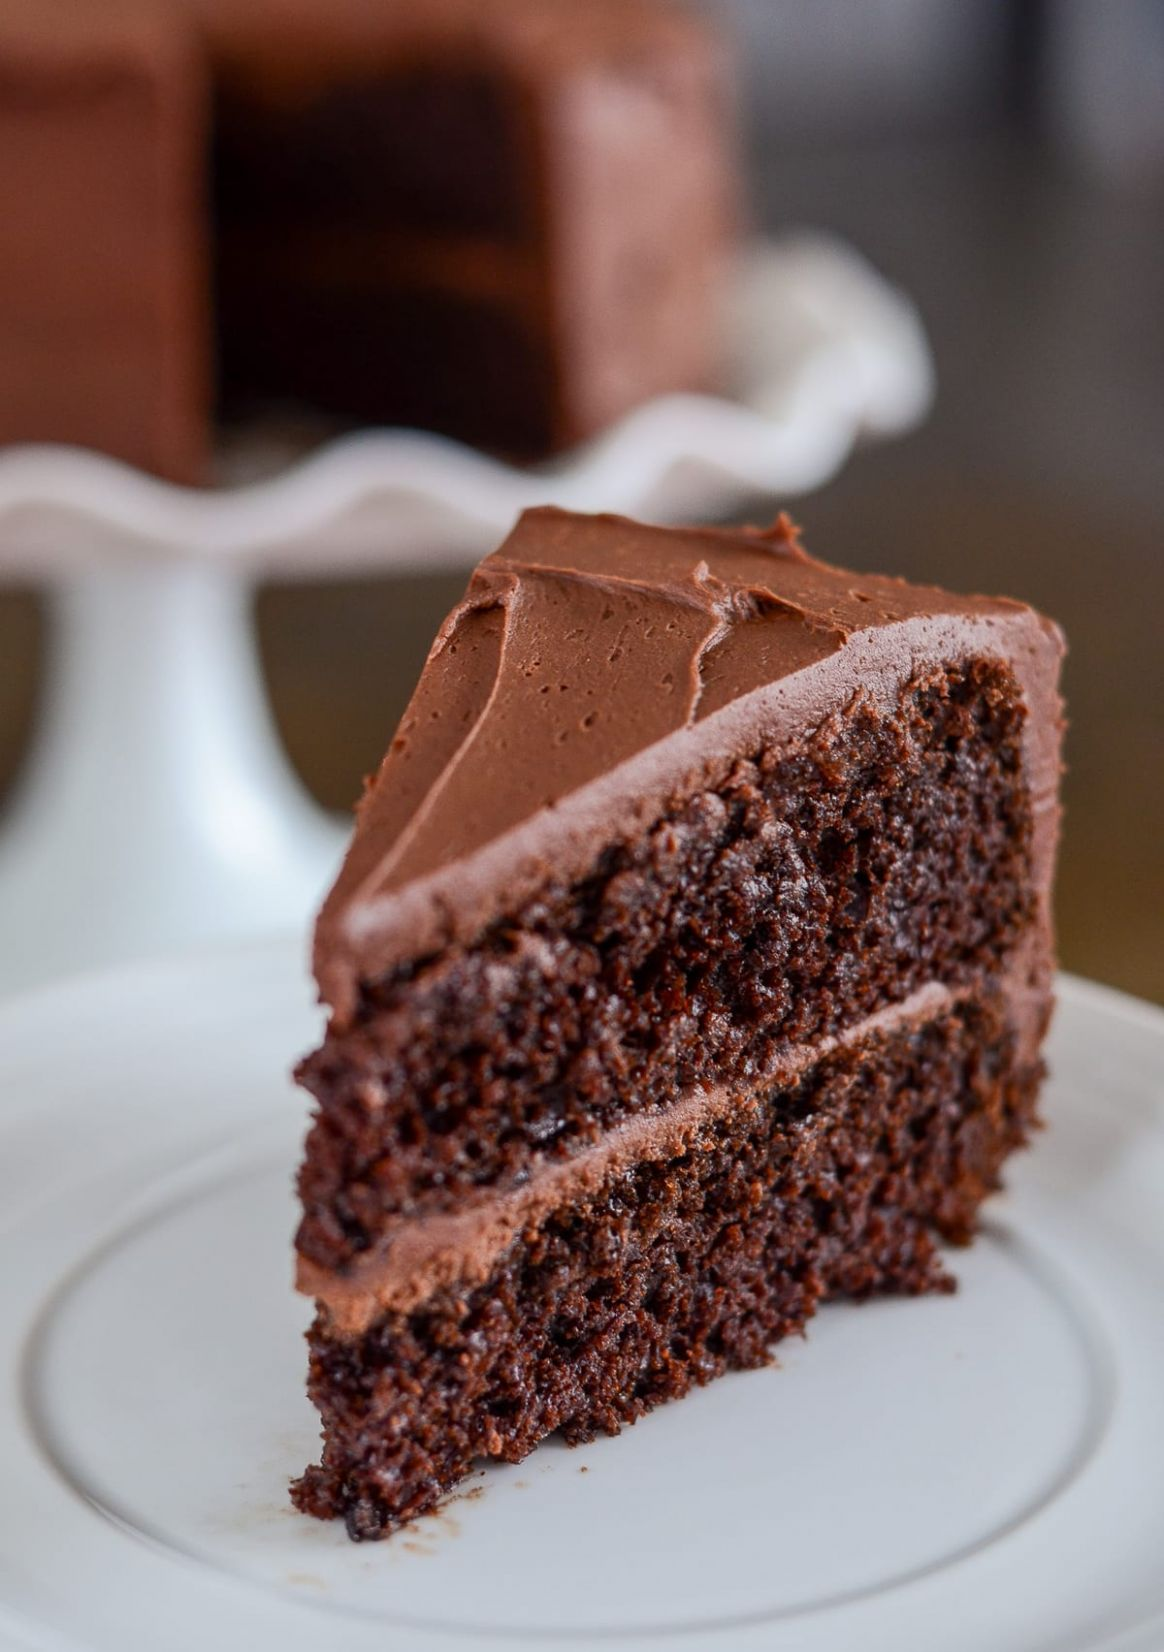 Chocolate Cake Recipe - Recipes Cake Easy